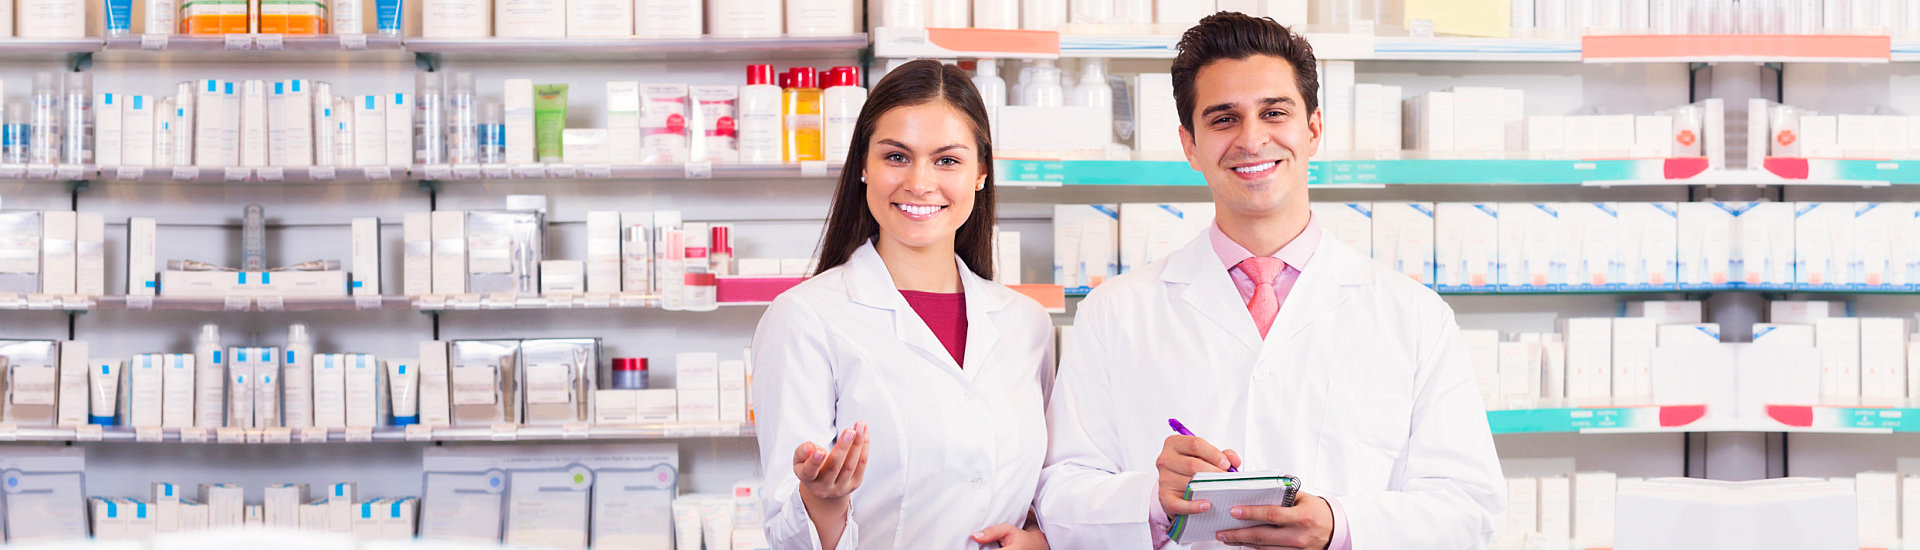 Positive pharmacist and pharmacy technician posing in drugstore